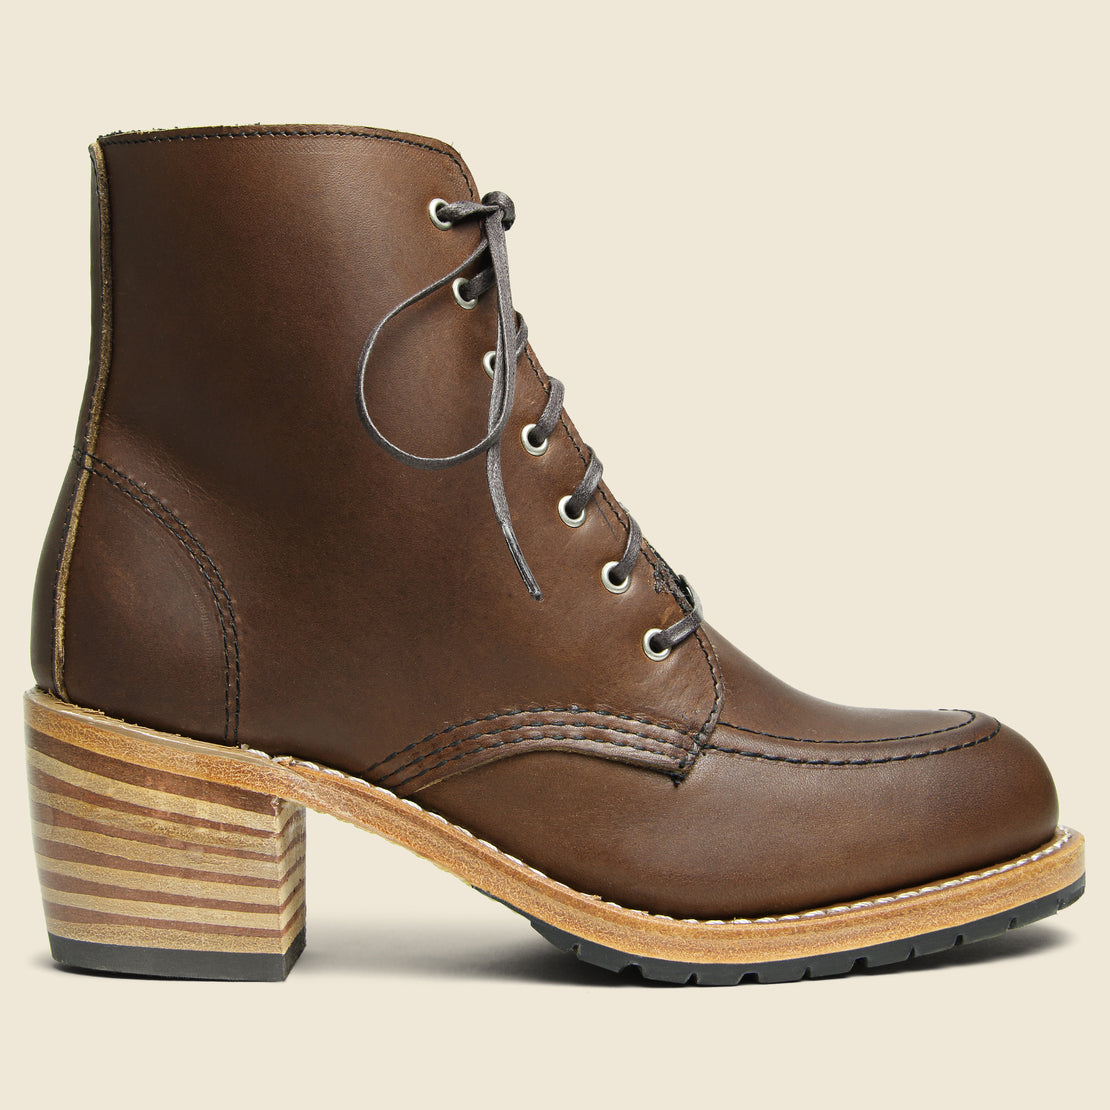 Red Wing Clara No. 3406 - Amber